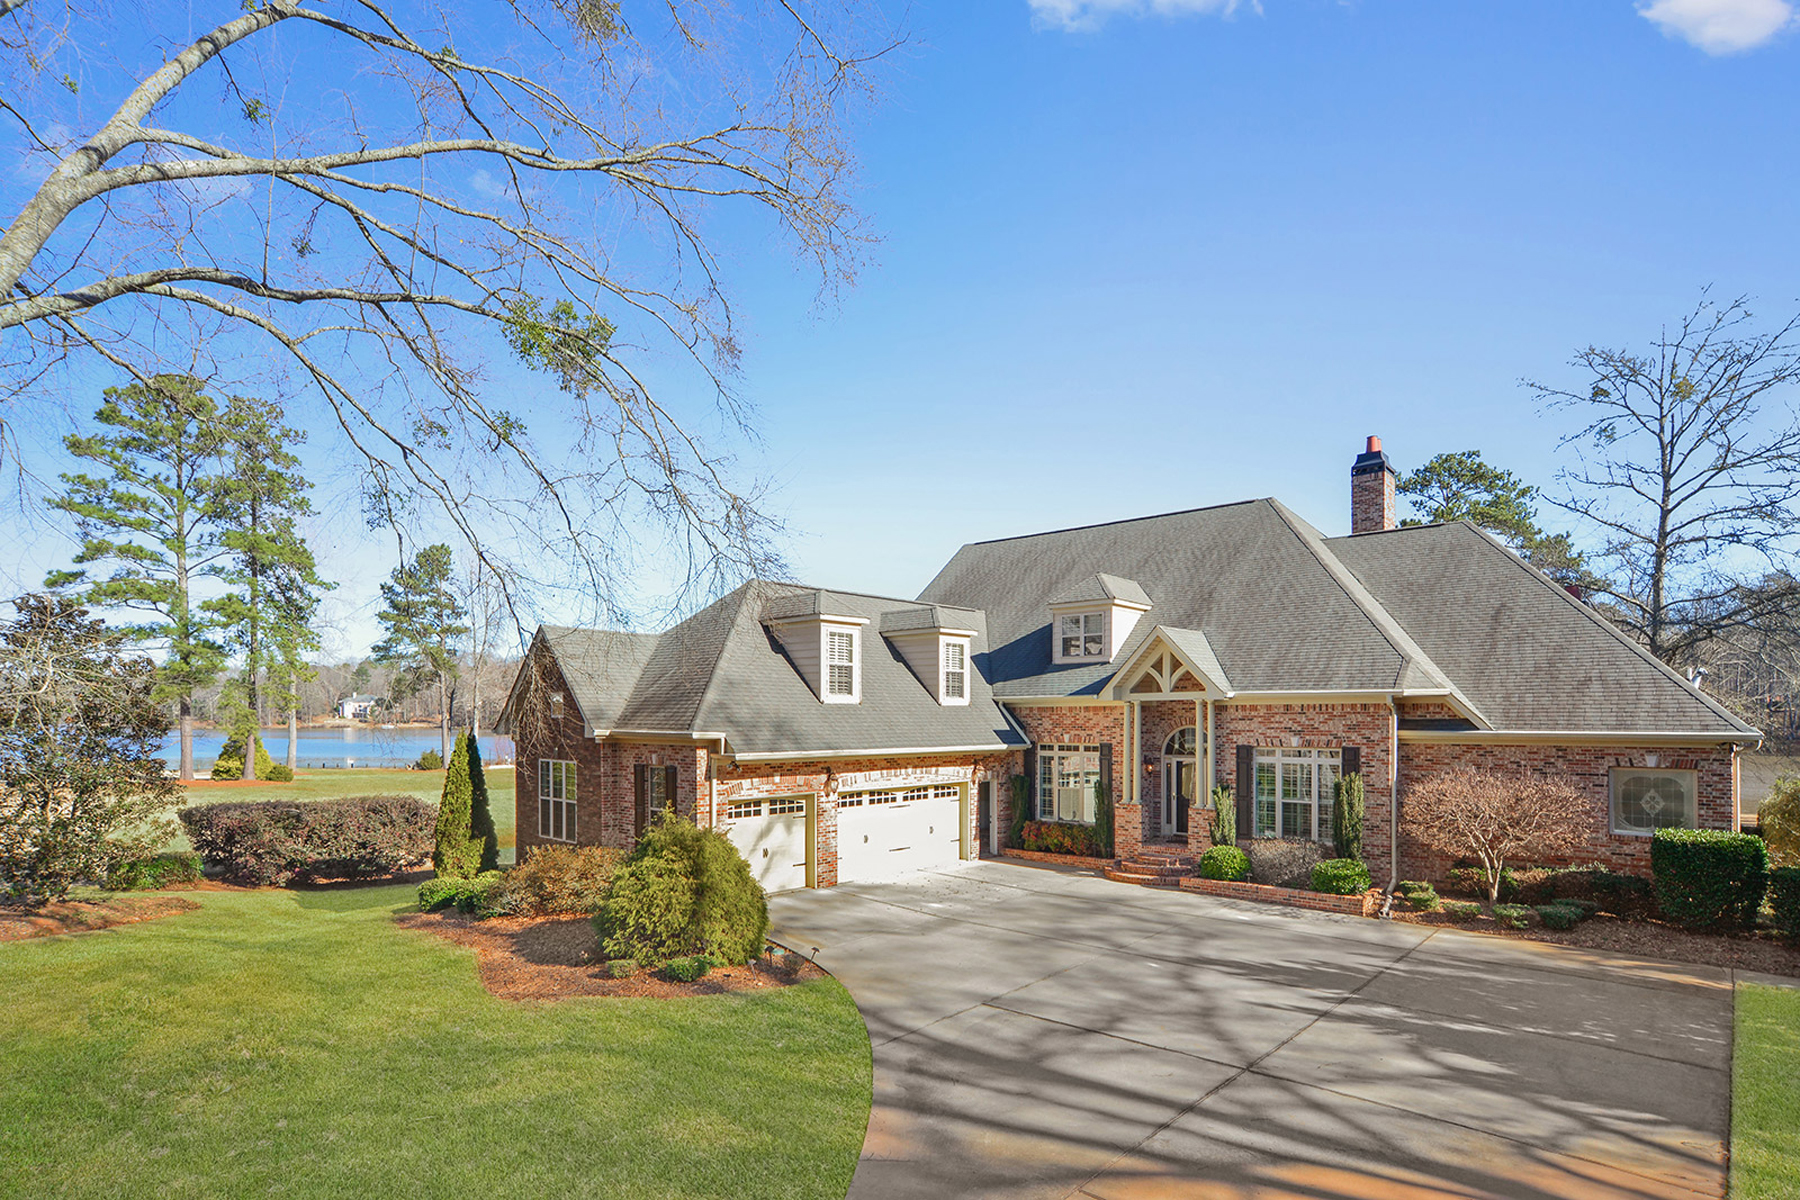 Single Family Home for Sale at Spectacular Lakefront Home 45 S Shore Drive Newnan, Georgia 30263 United States